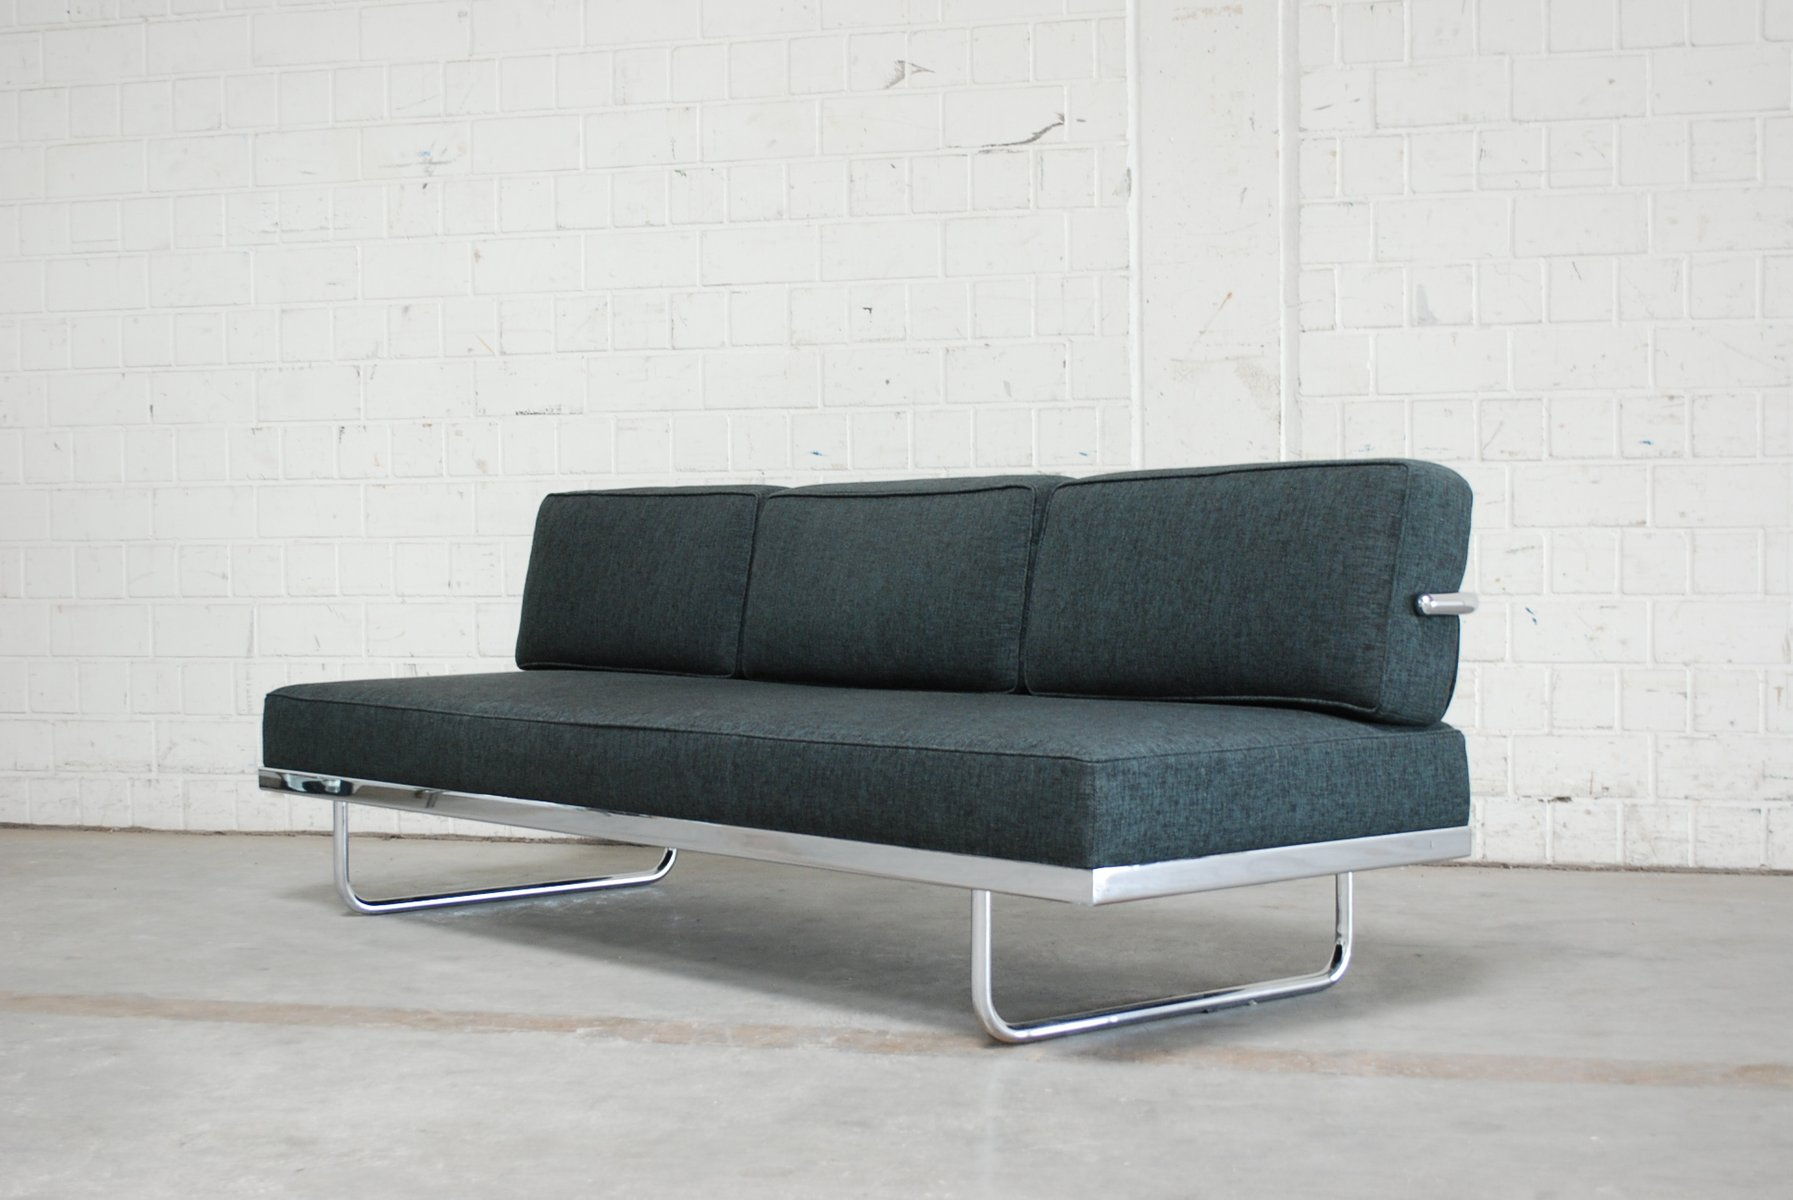 lc5 sofa price sisi italia lucca reviews vintage f daybed by le corbusier for cassina sale